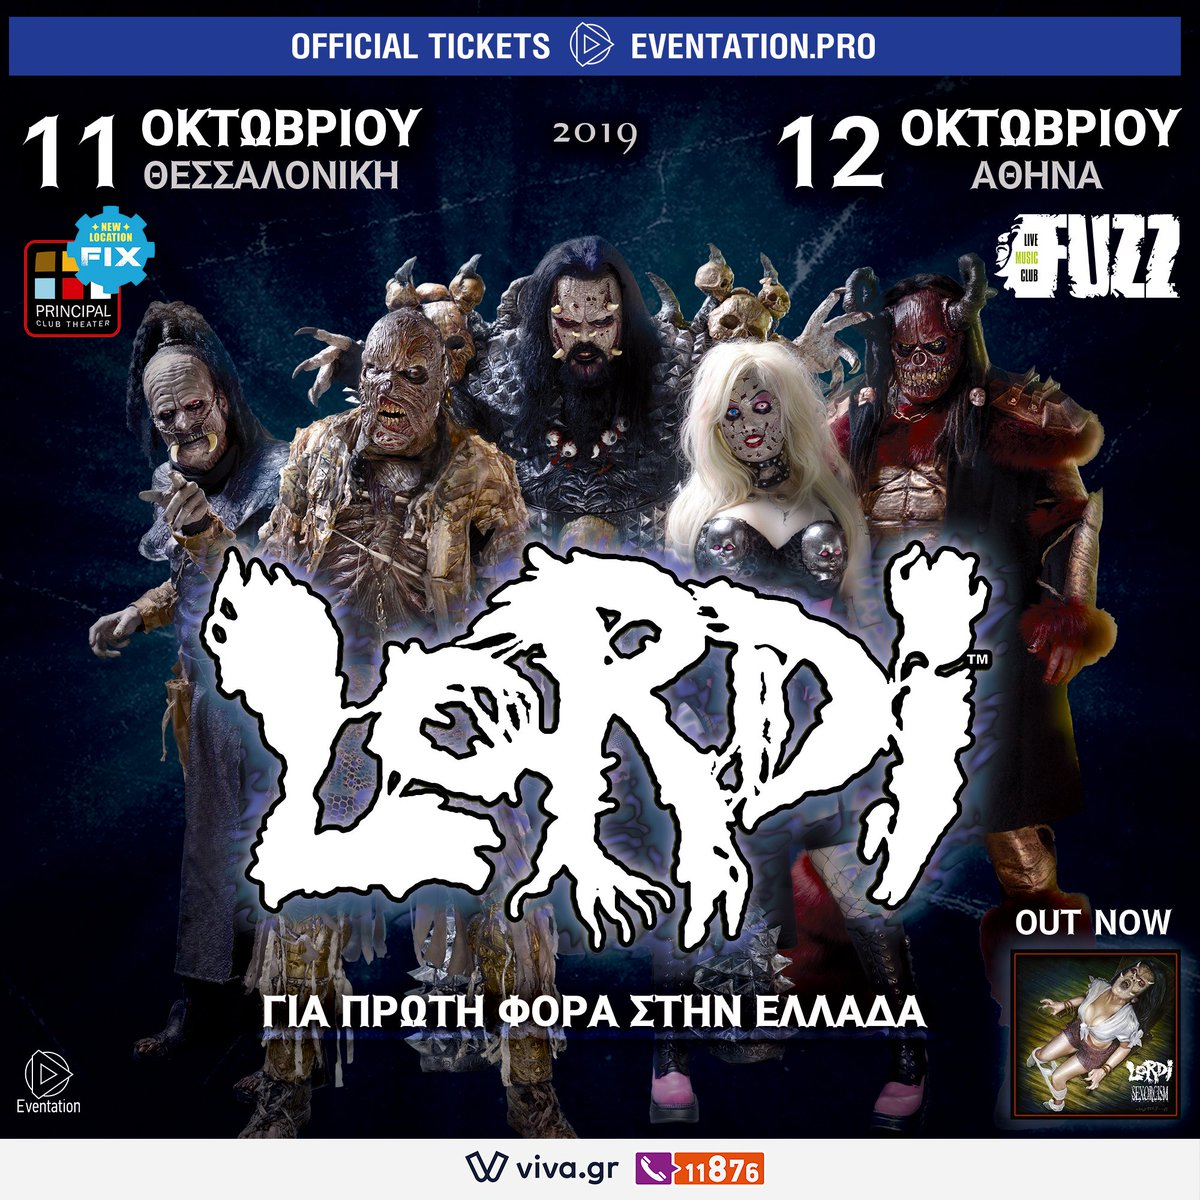 It has been long overdue…  LORDI IS COMING TO GREECE!  We're bringing #Sextourcism to #Greece for two dates this coming October:  October 11th: #Thessaloniki - Principal Theatre October 12th: #Athens - FUZZ Club  Ticket information will be released soon! https://t.co/gMLLAa2lIF